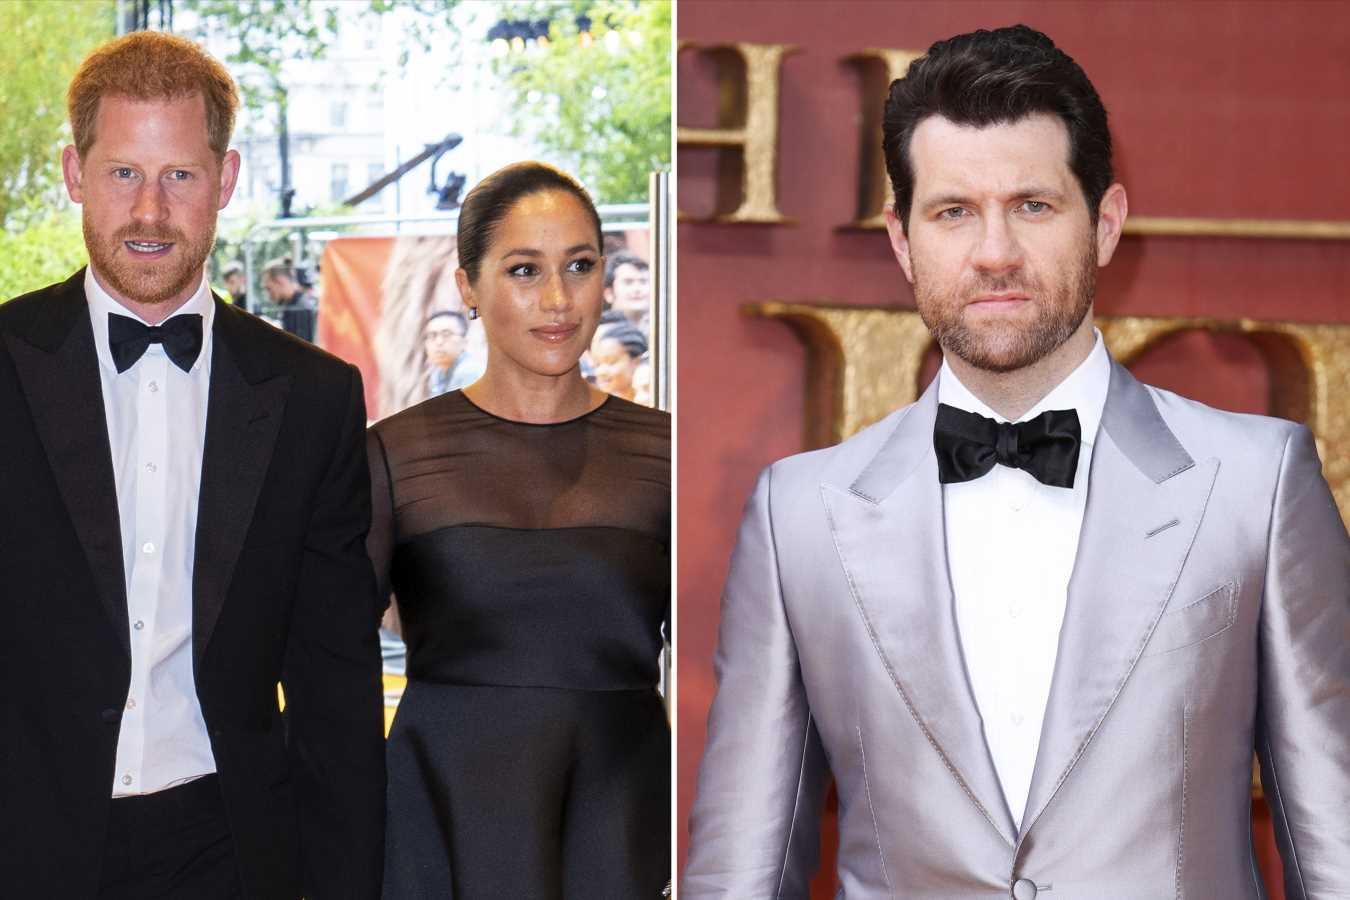 Billy Eichner Shares Video of Himself 'Completely Freaking Out' Before Meeting Meghan and Harry